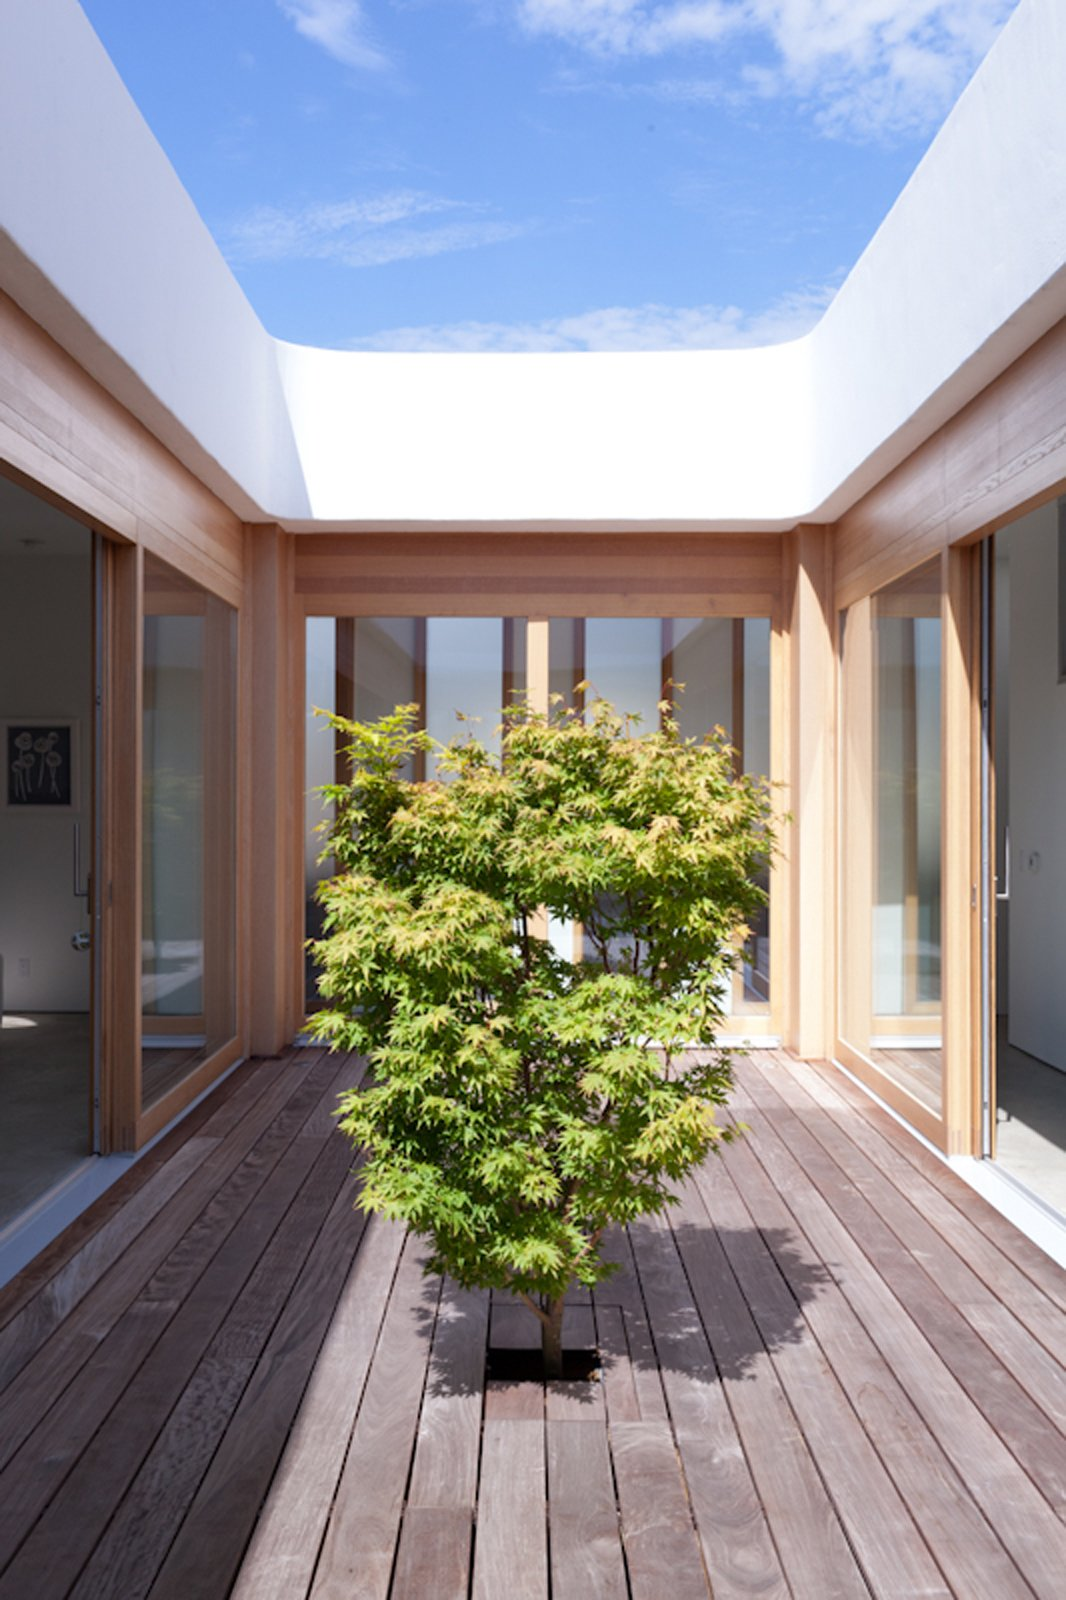 The Japanese maple gives the courtyard its peaceful character. Looking Inward - Photo 18 of 19